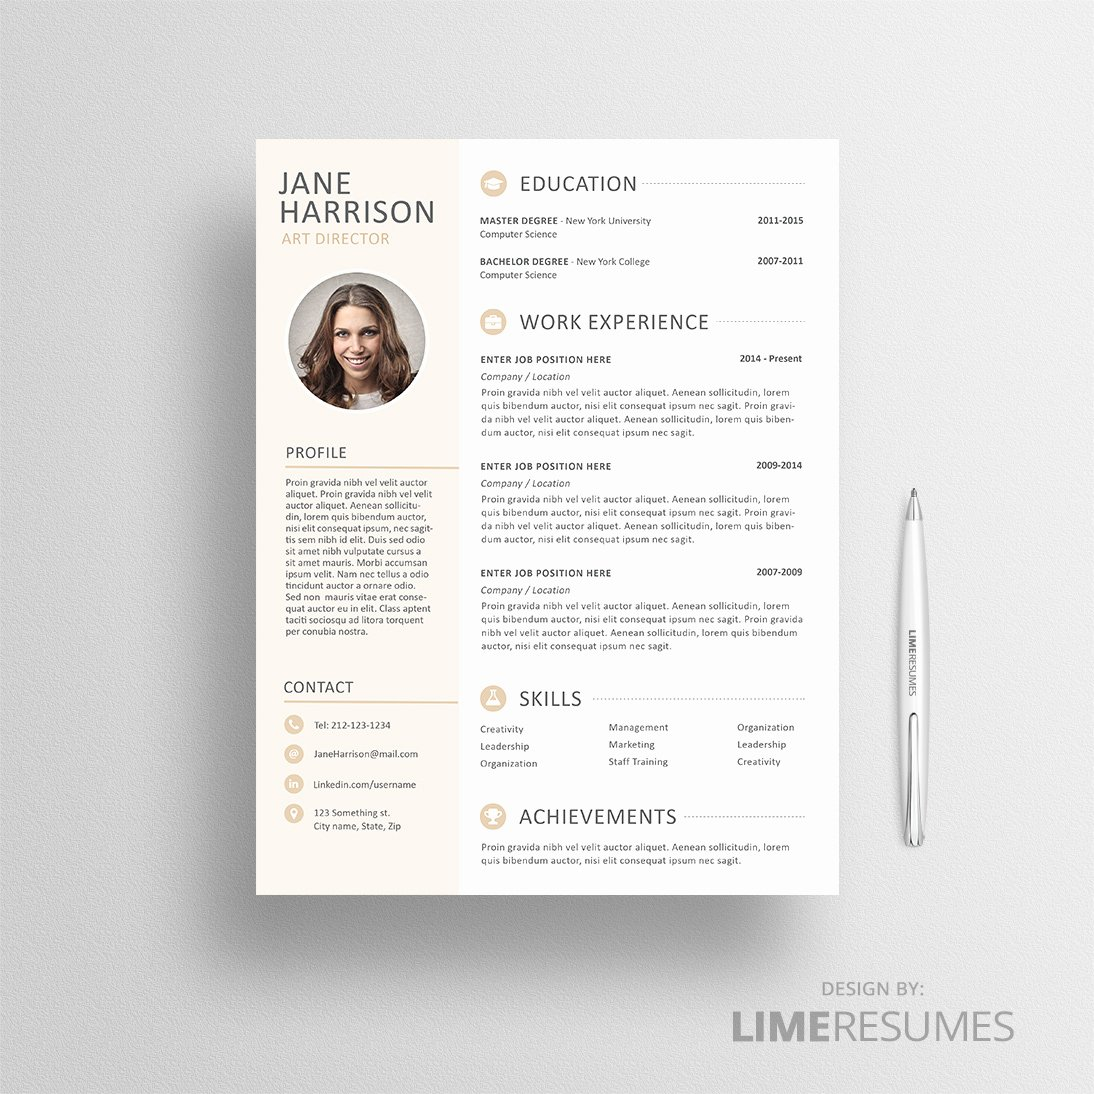 Resume with Picture Template Lovely Resume with Cv Template with Limeresumes